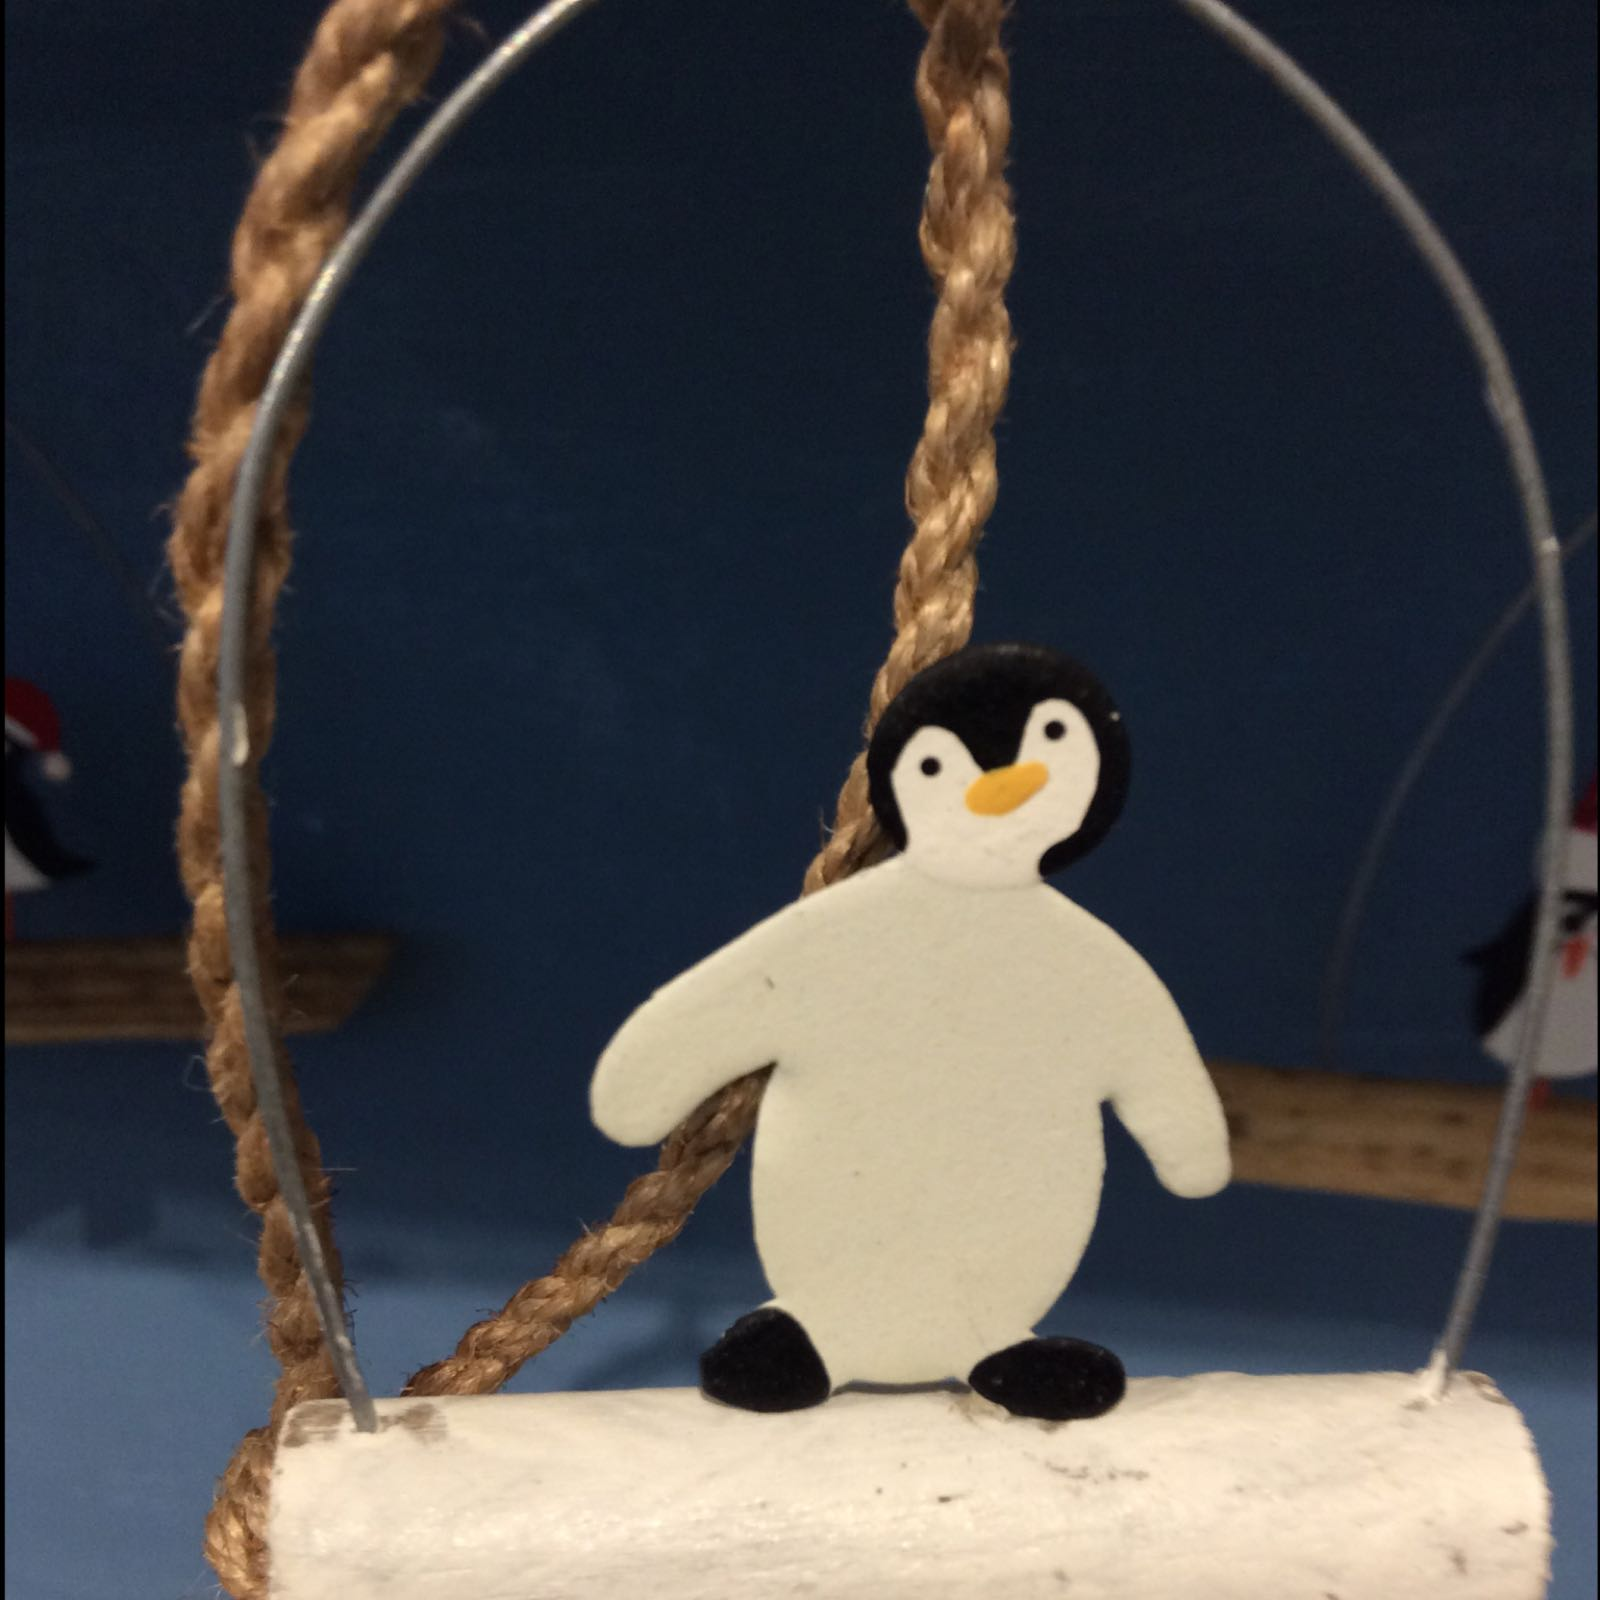 Penguin on a stick